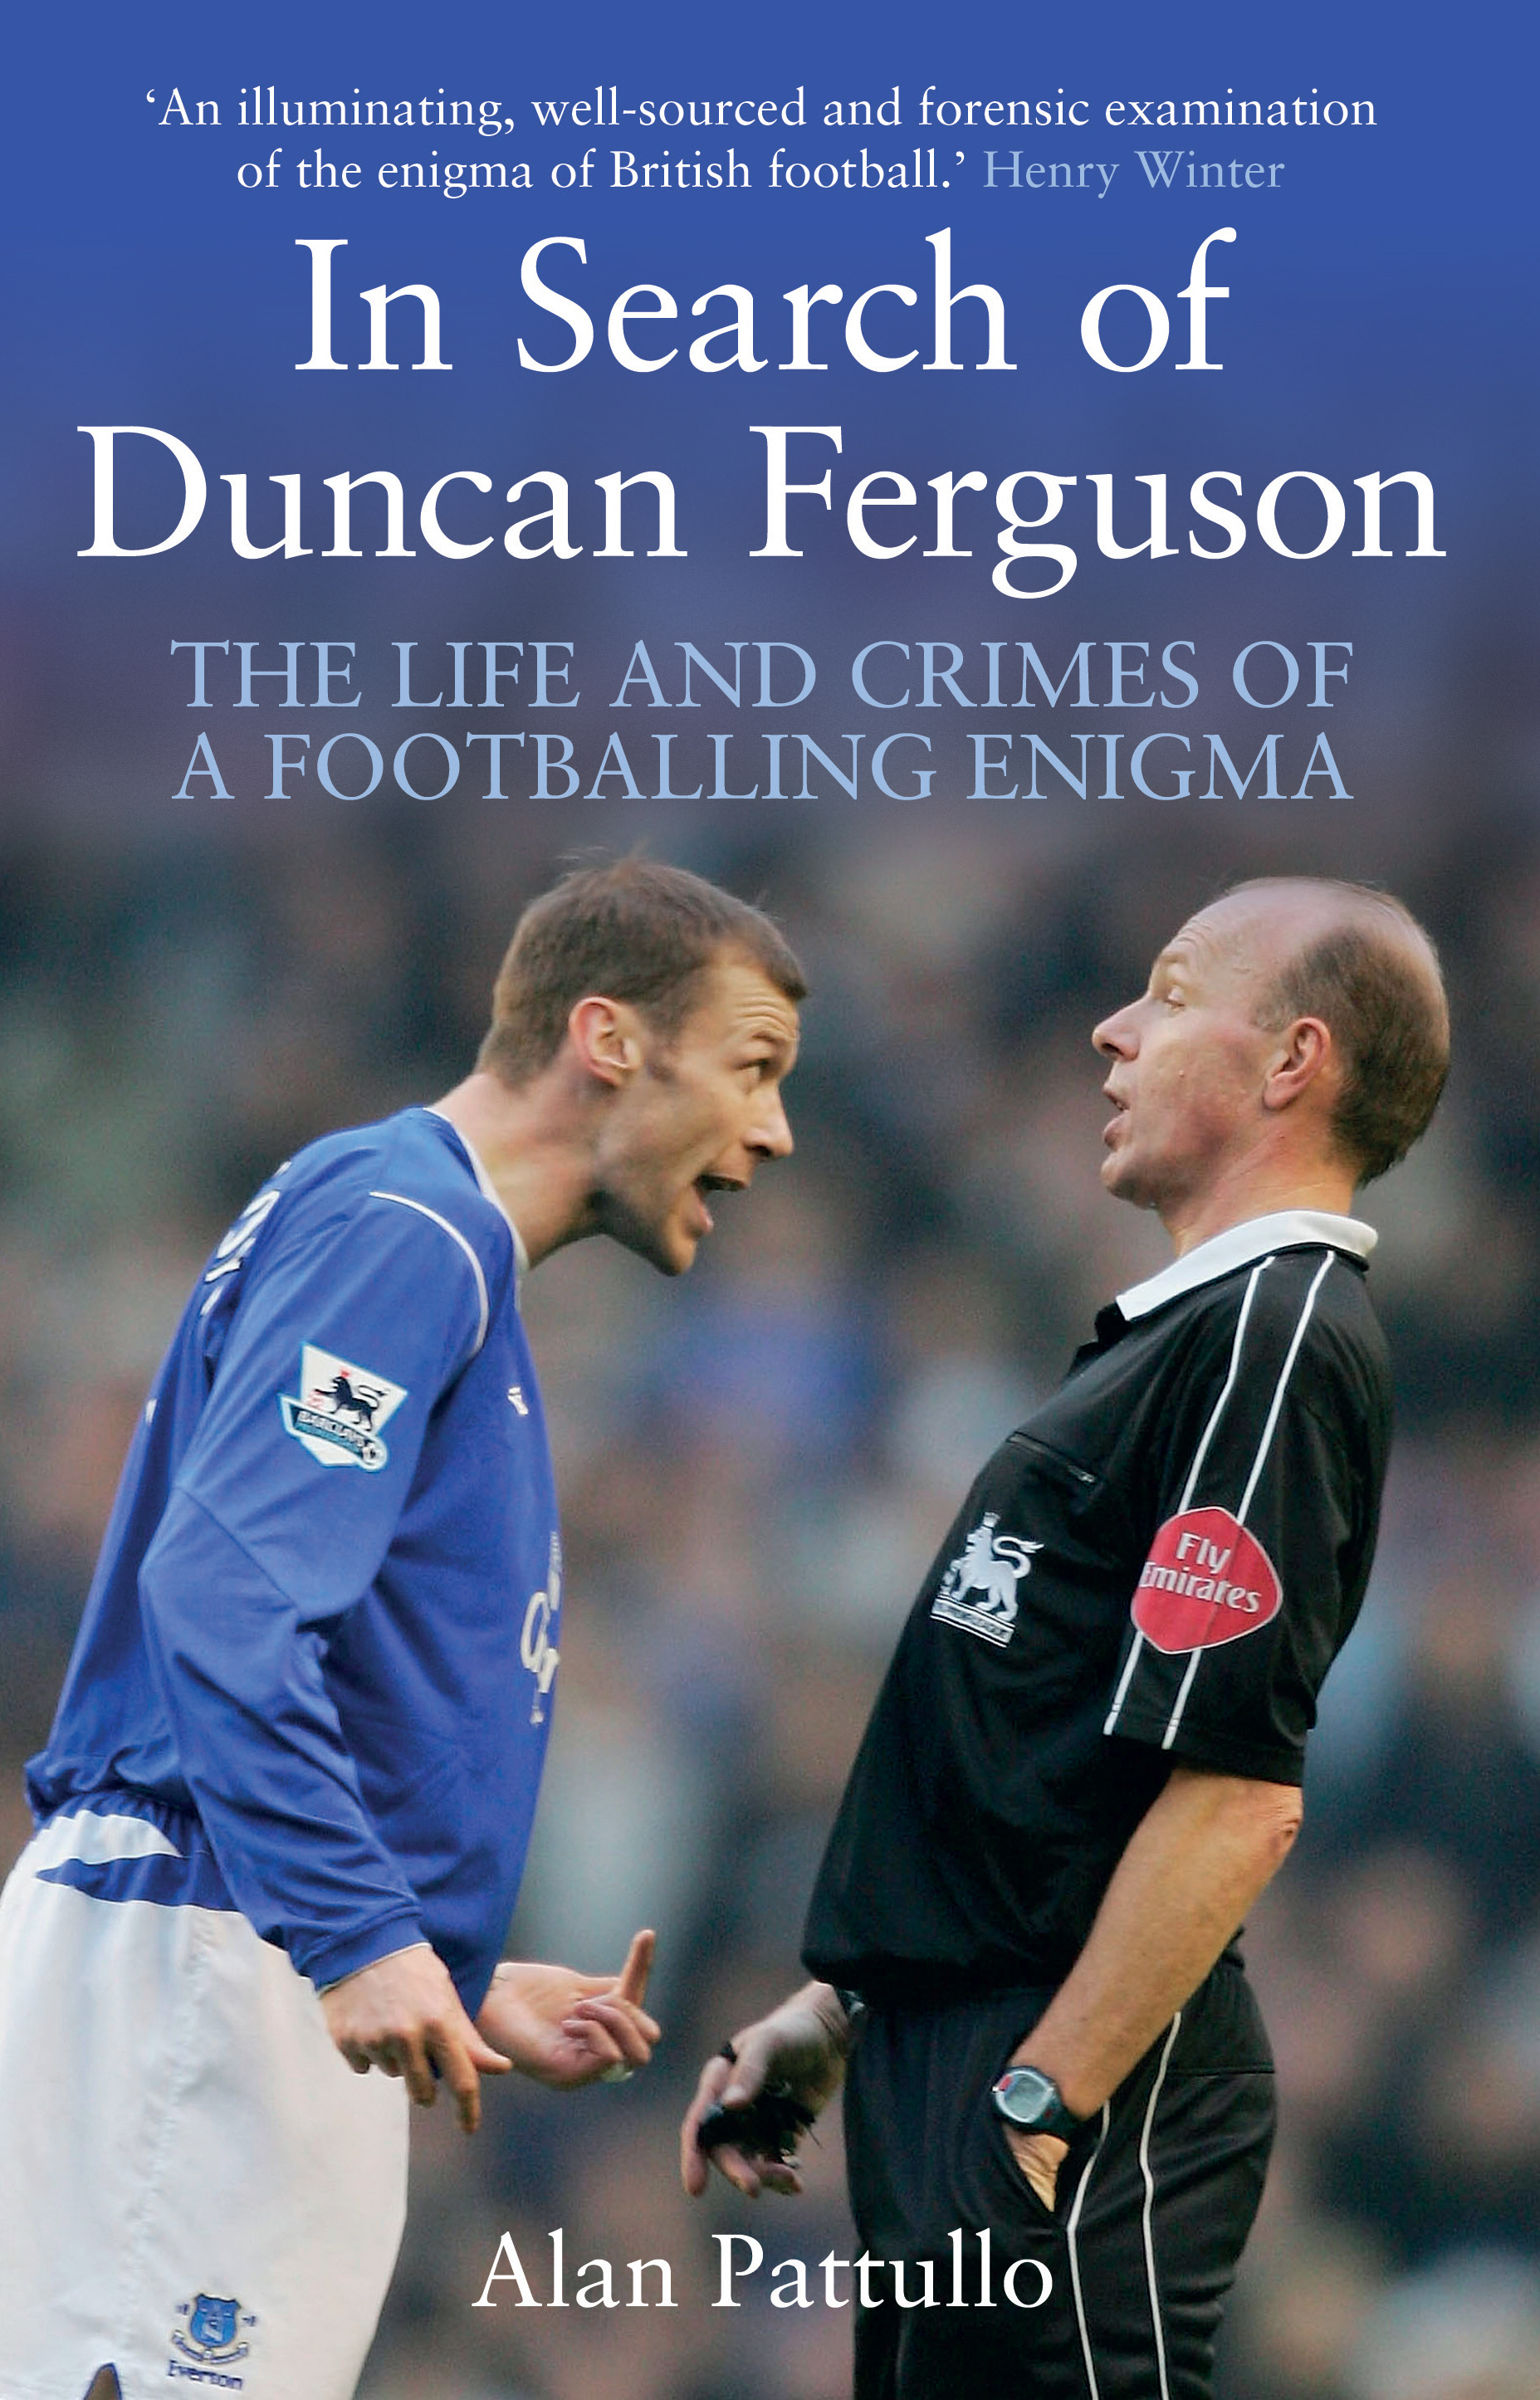 In Search of Duncan Ferguson The Life and Crimes of a Footballing Enigma